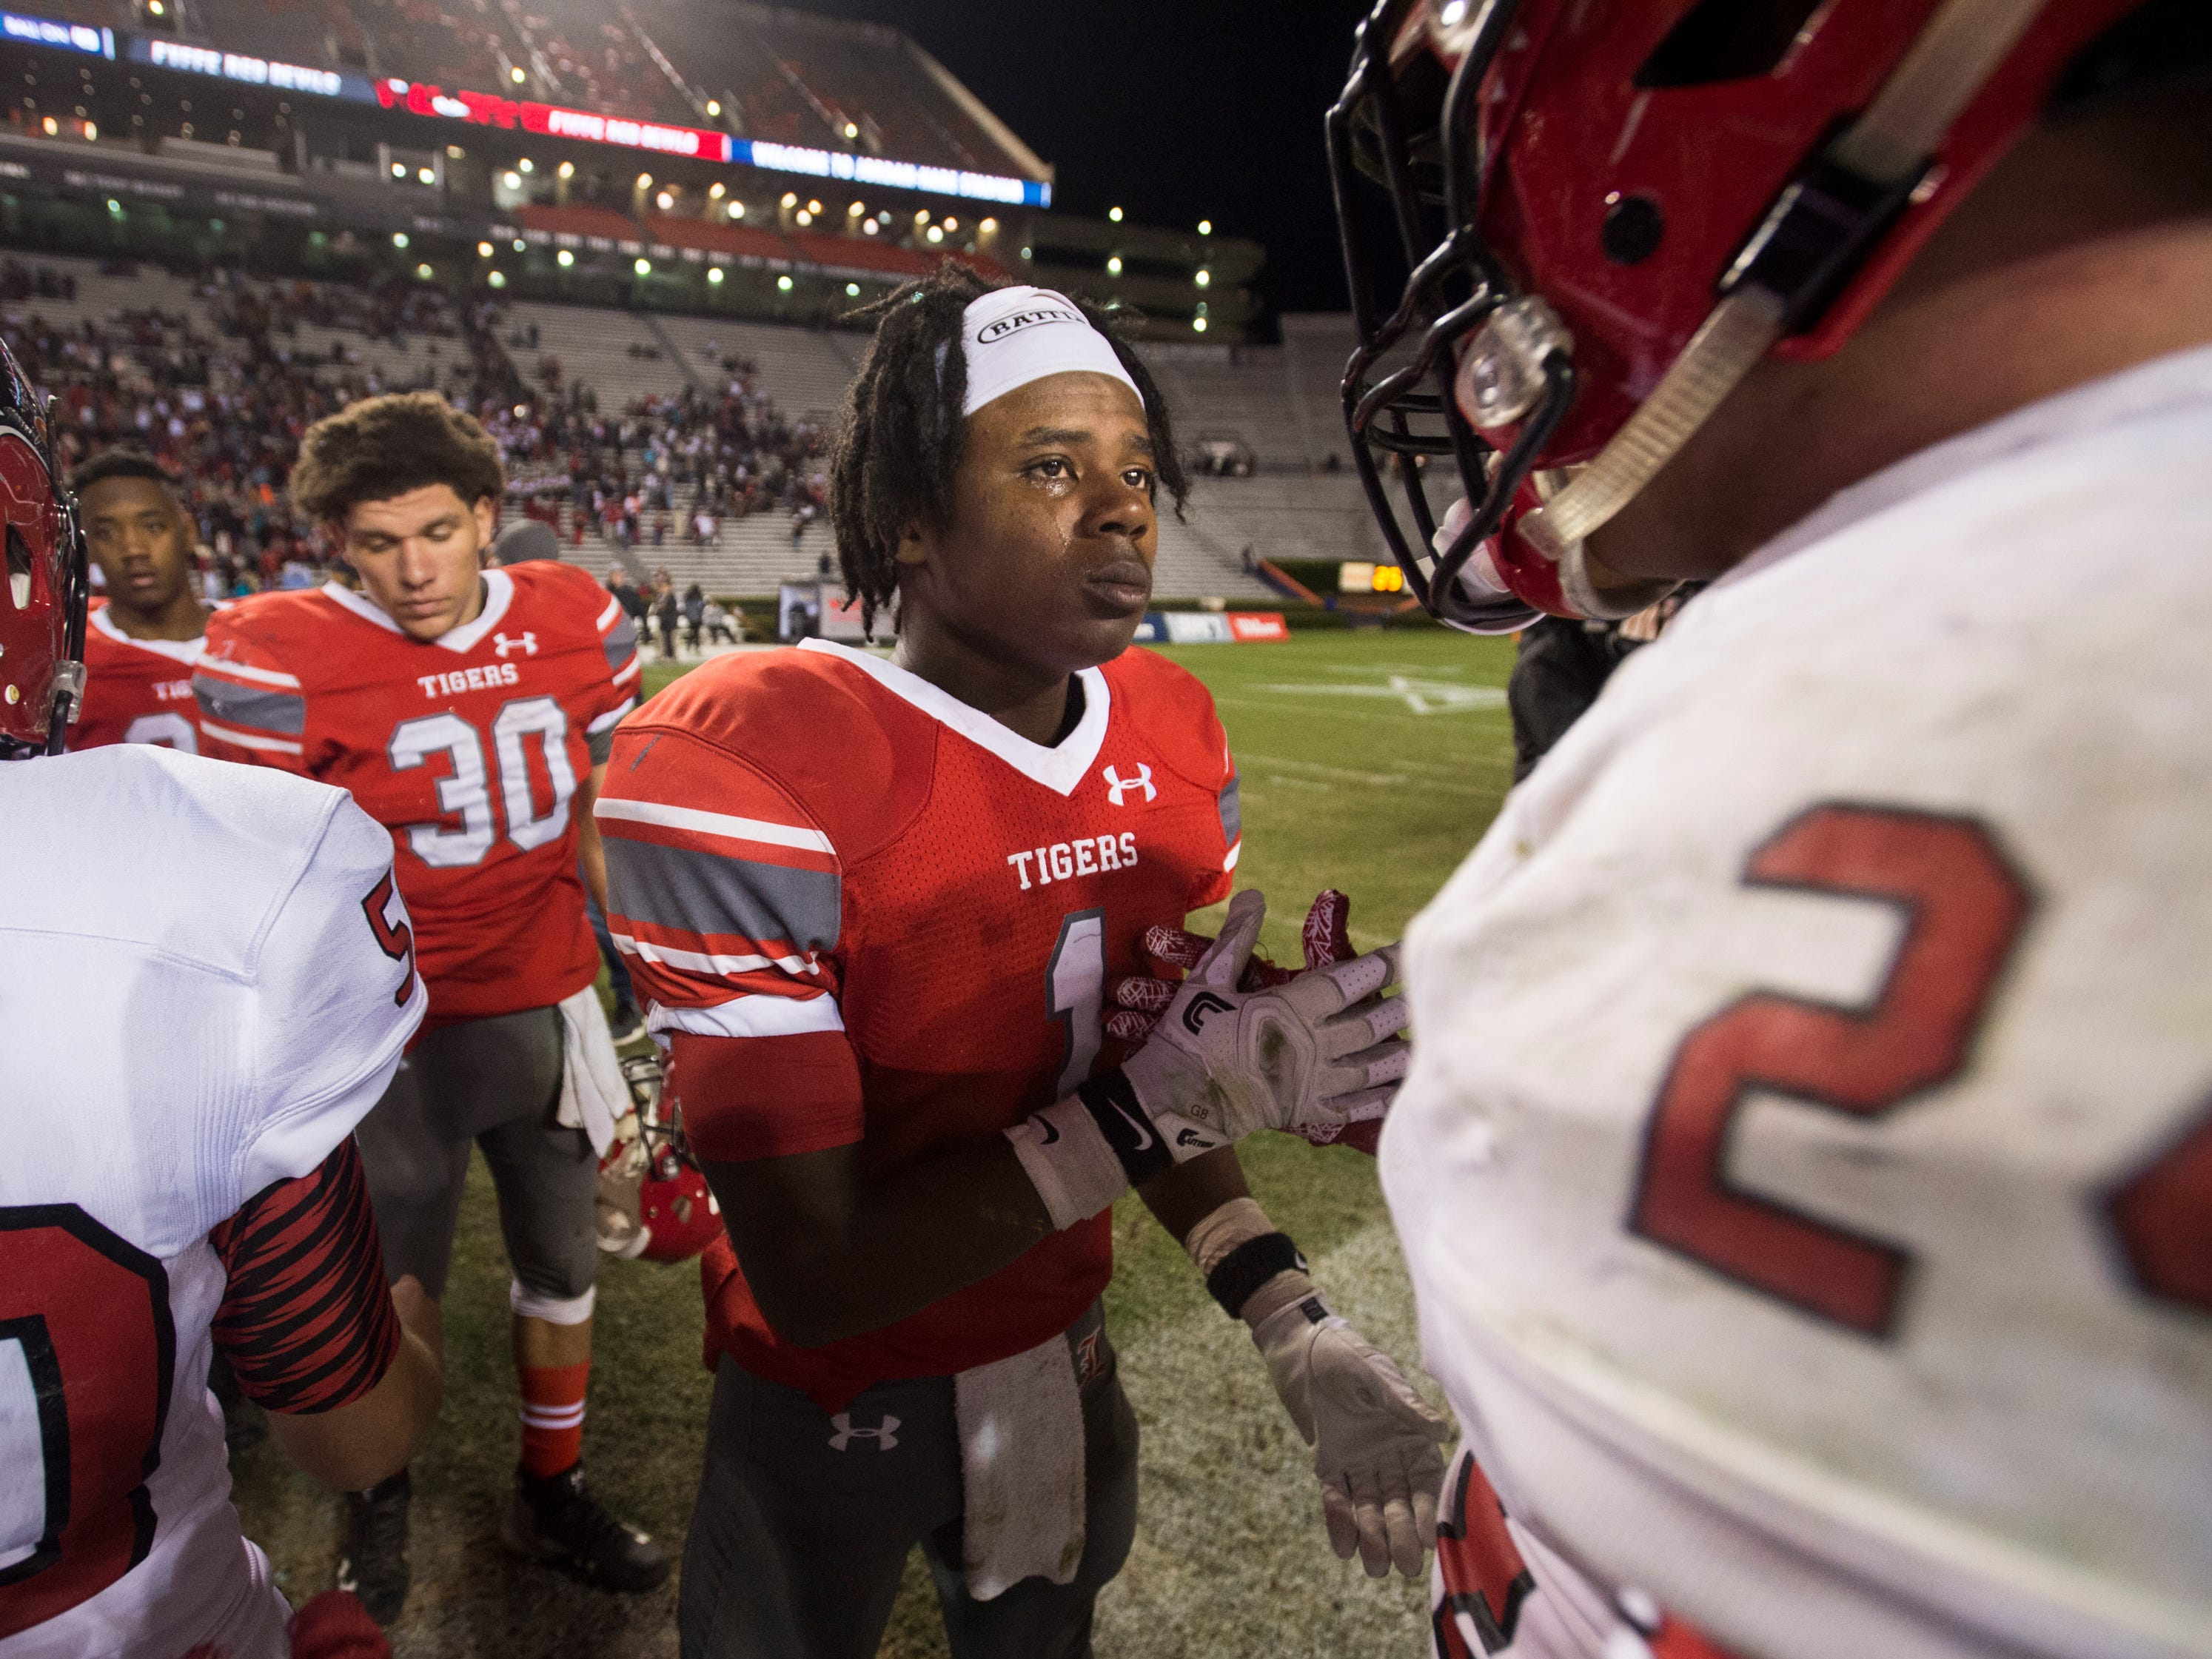 Luverne's Edward Thomas (1) shakes hands with Fyffe's Payton Anderson (24) after the Class 2A state championship at Jordan-Hare Stadium in Auburn, Ala., on Friday, Dec. 7, 2018. Fyffe defeated Luverne 21-19.